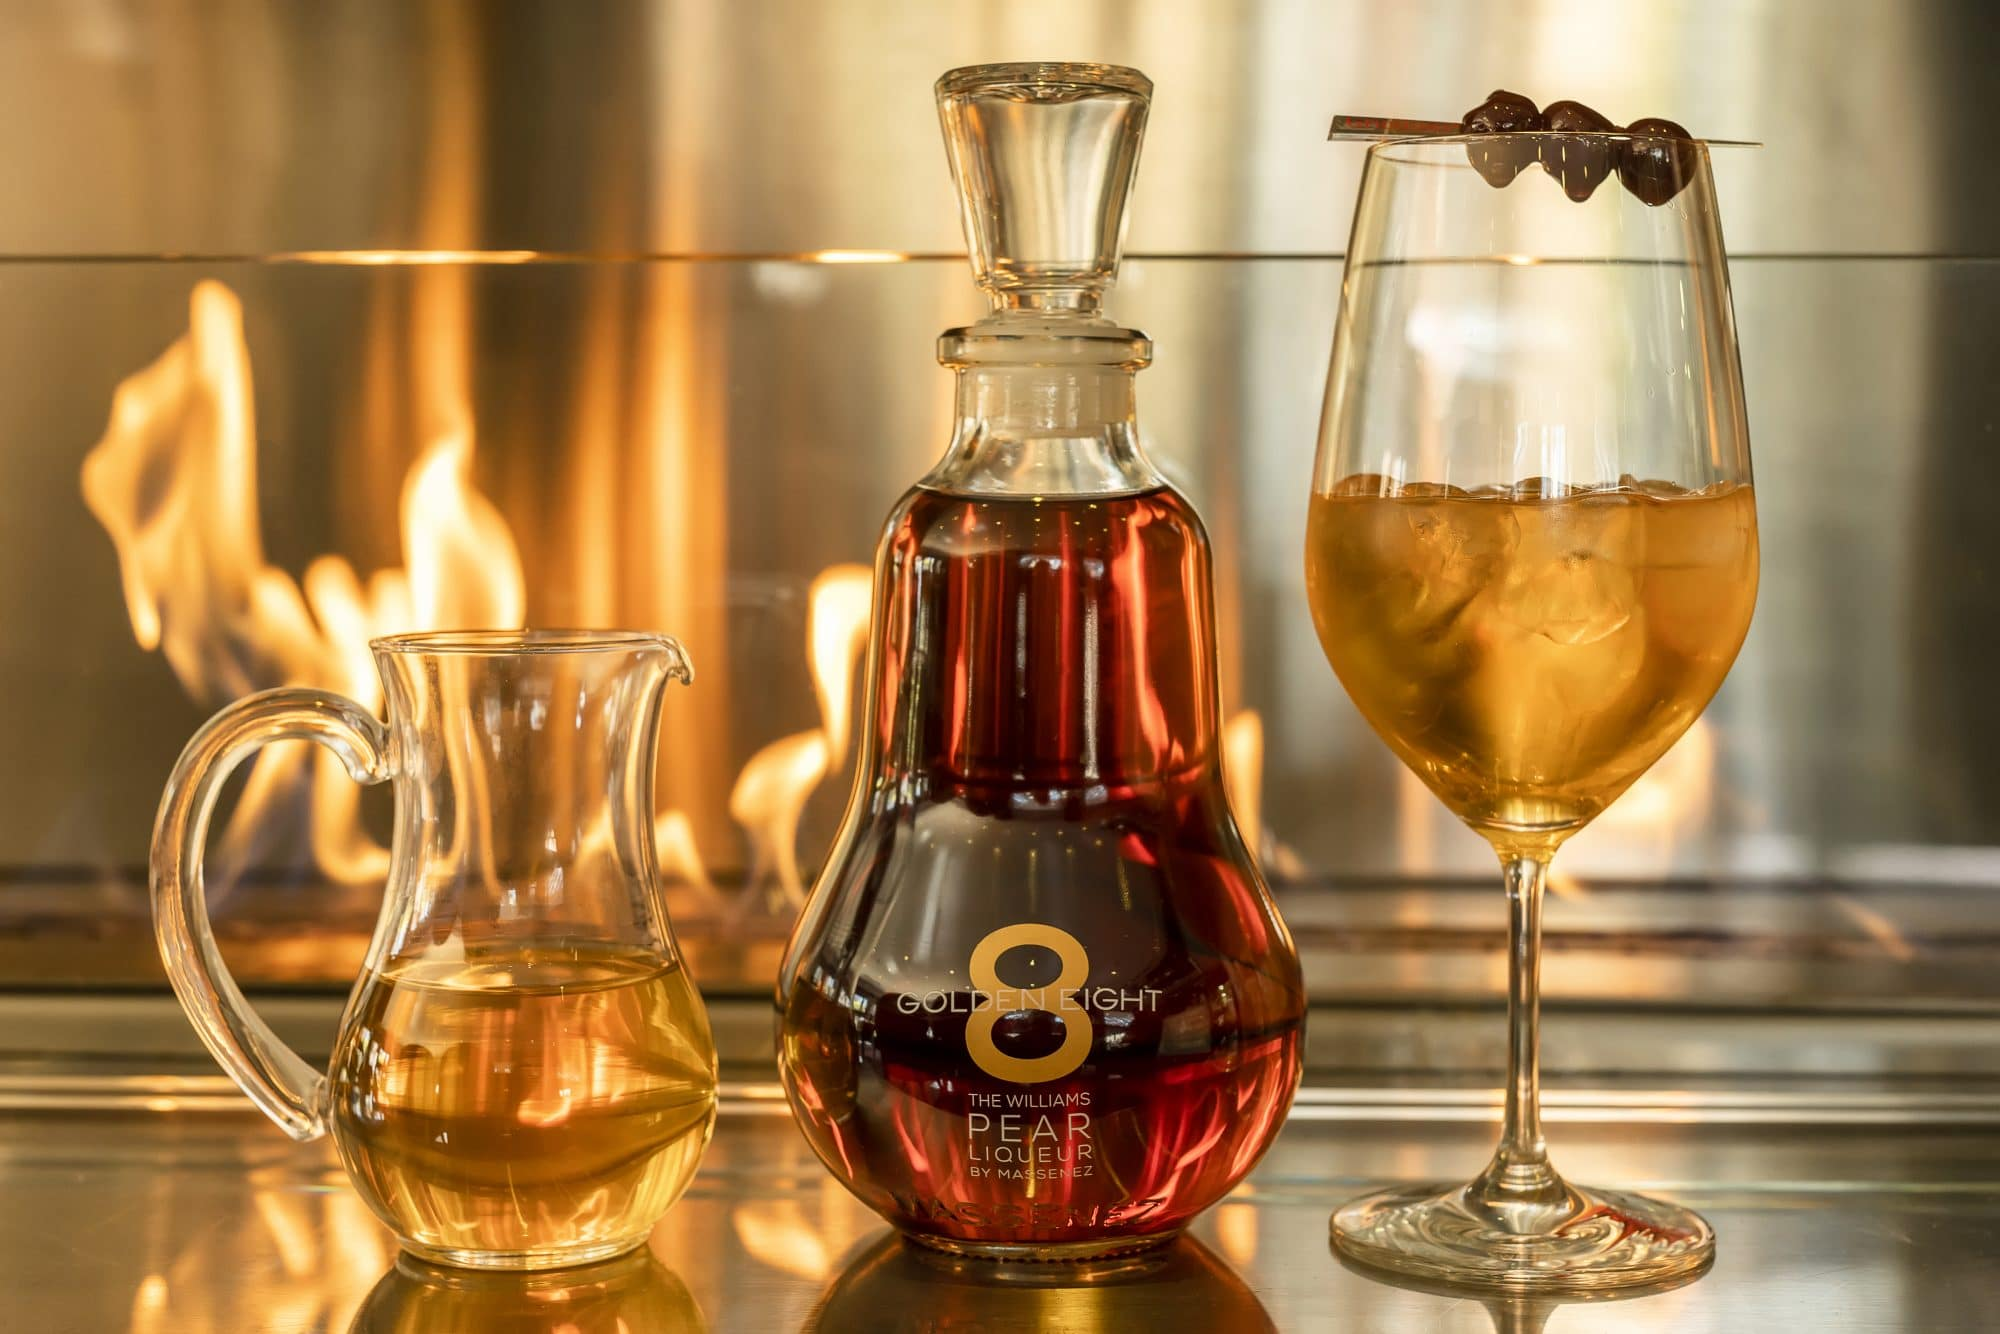 Massenez Williams Golden 8 Pear Liqueur